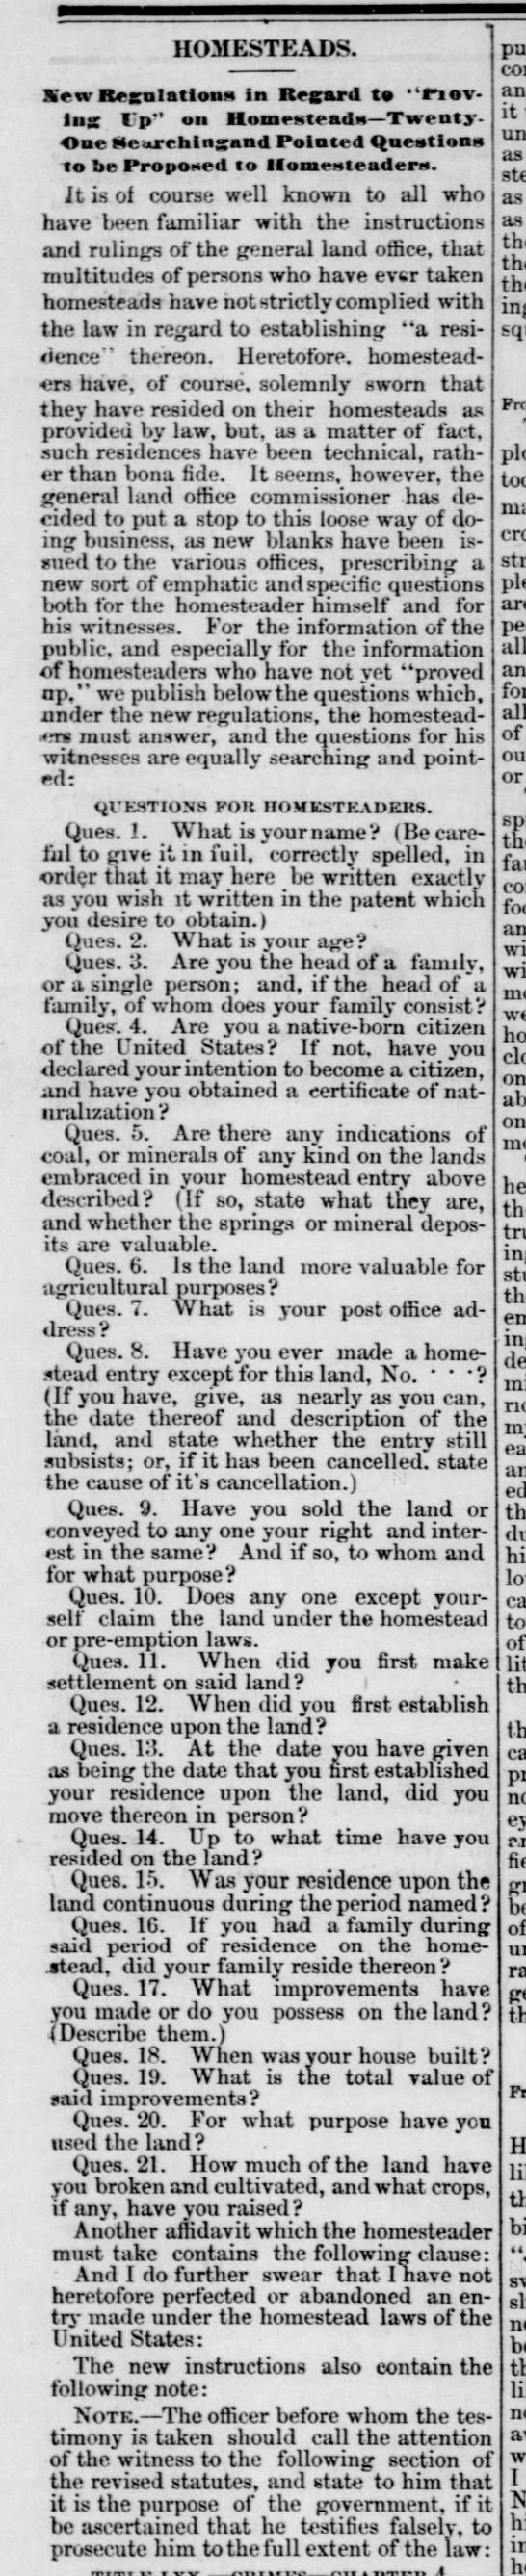 20 questions homesteaders must answer as proof of settlement, 1878 -